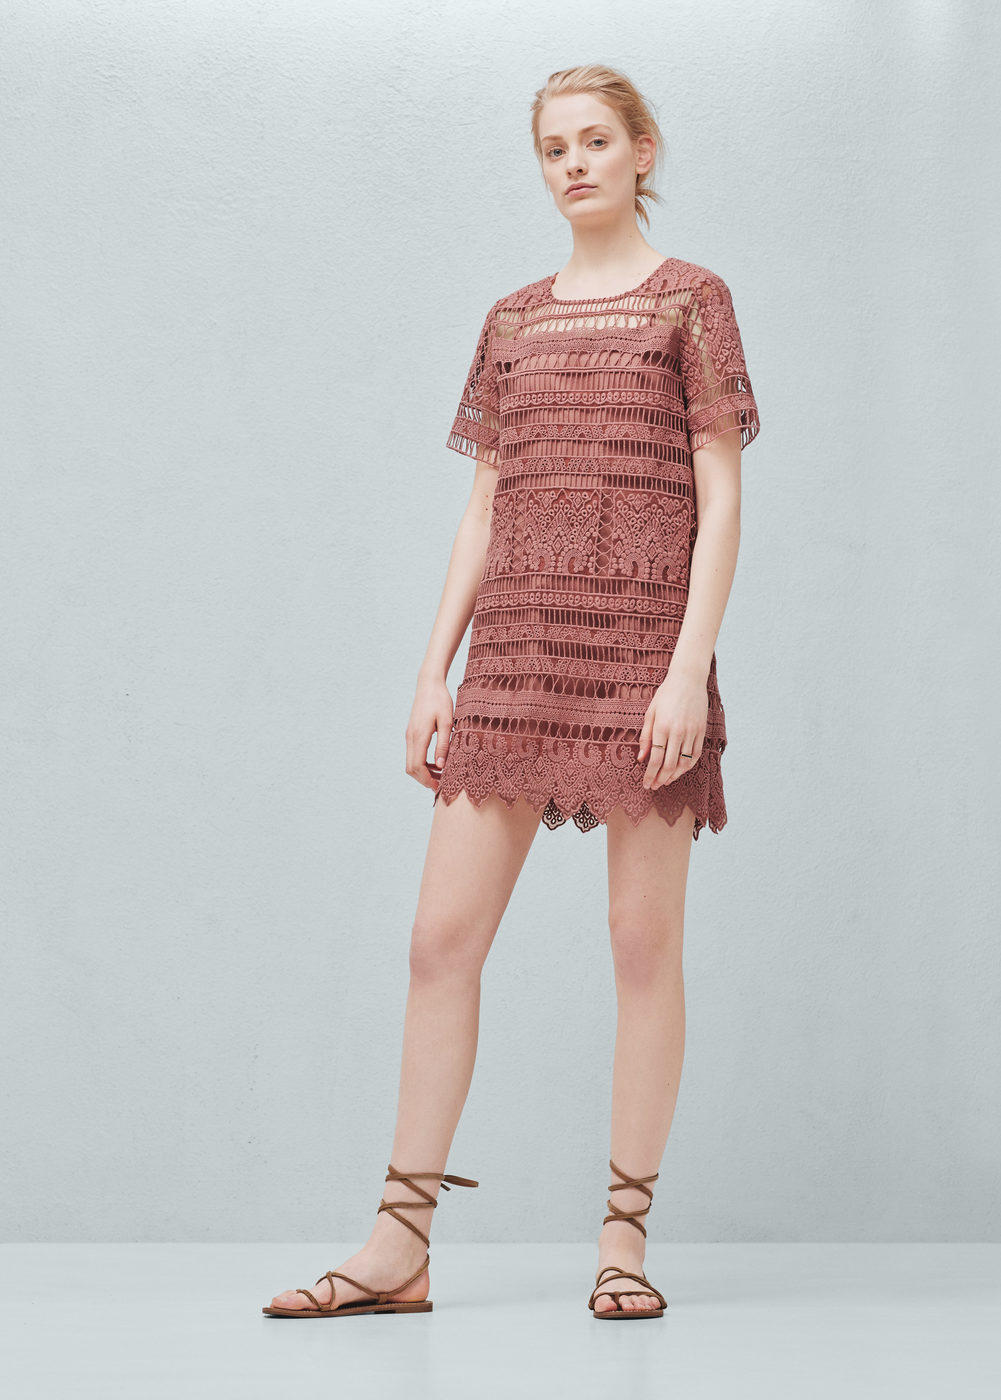 Up to 50% Off Spring Promotion @ Mango